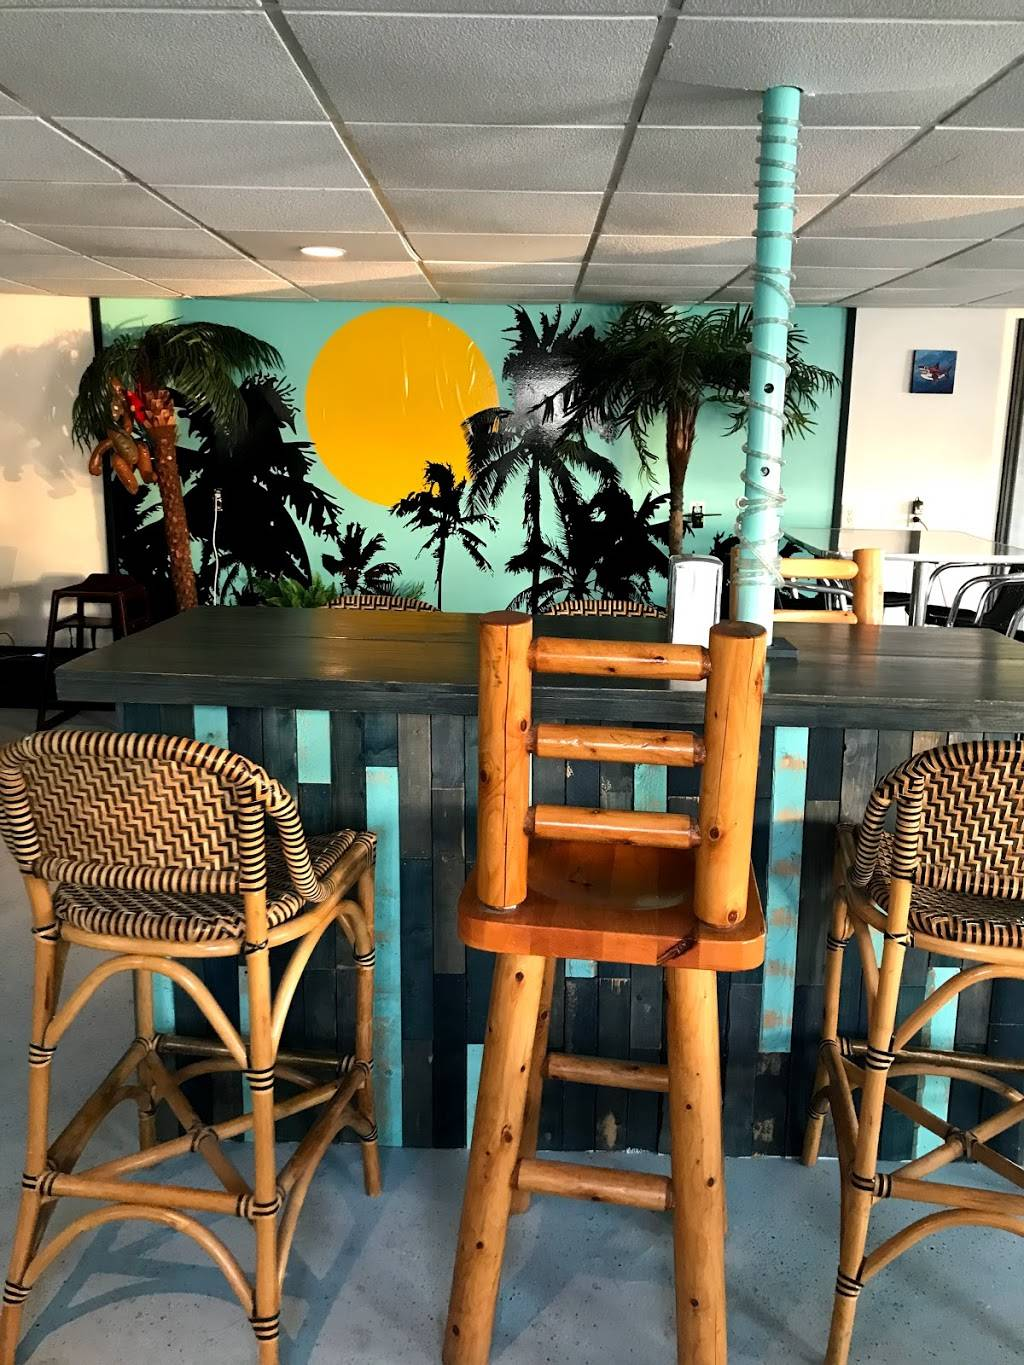 Coconut Joes Harbour Bar and Grill | restaurant | 53 Bay St, Tobermory, ON N0H 2R0, Canada | 7055390180 OR +1 705-539-0180